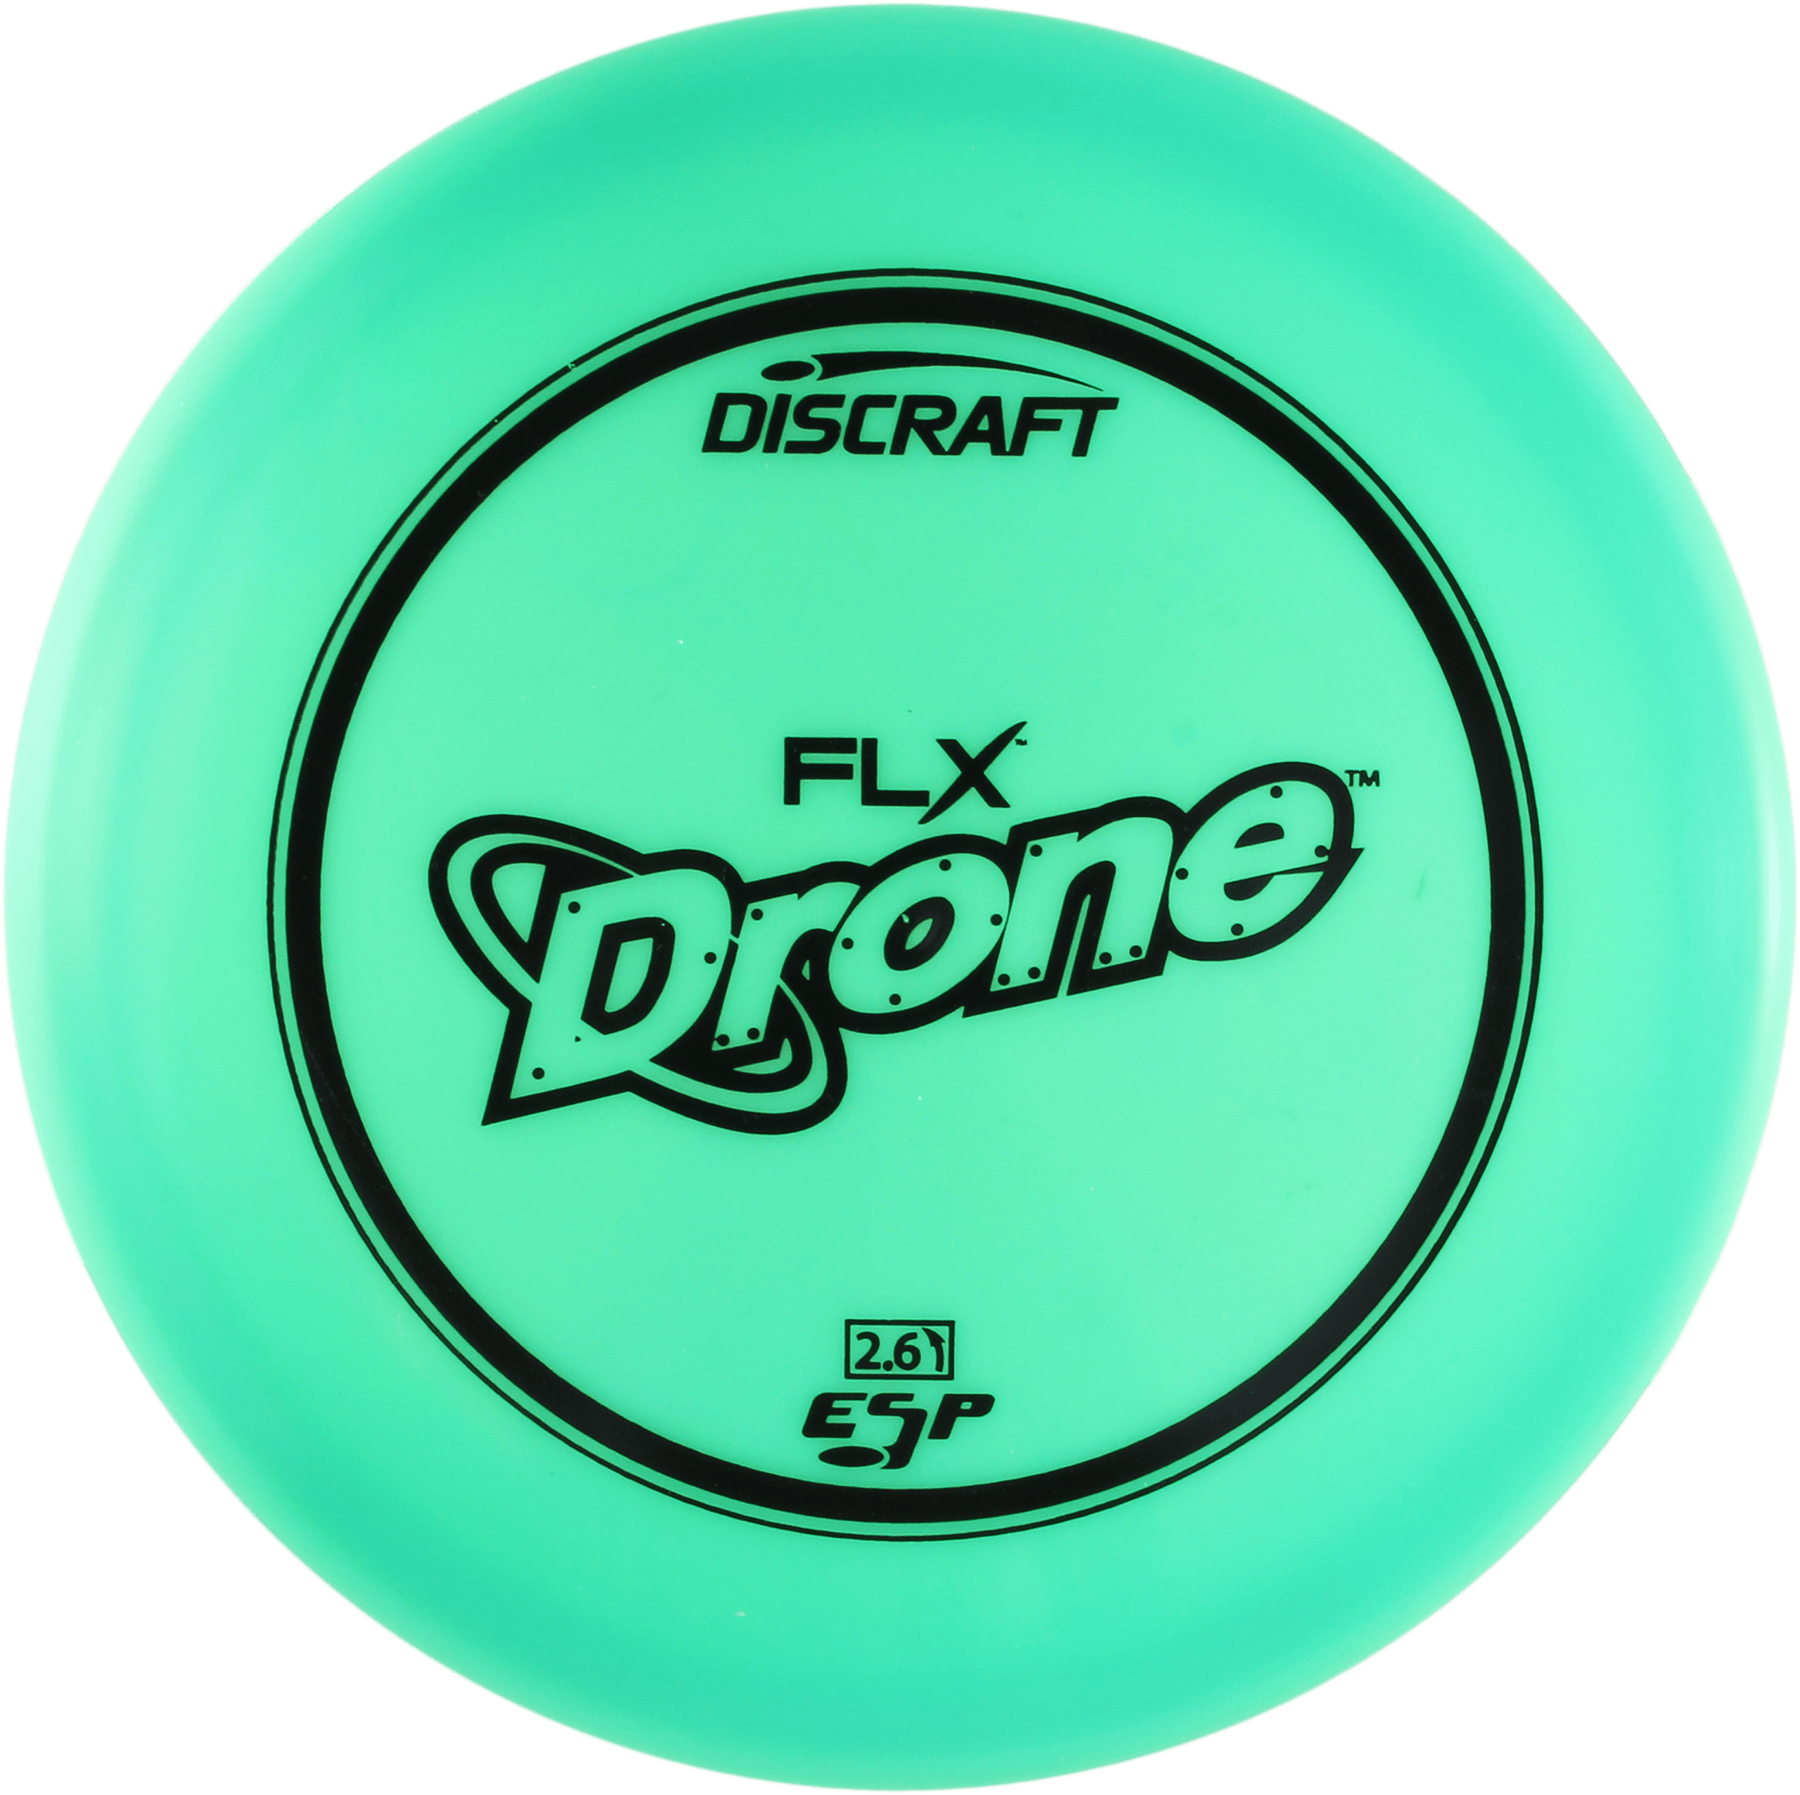 Frisbee clipart frisbee golf. Png images free download